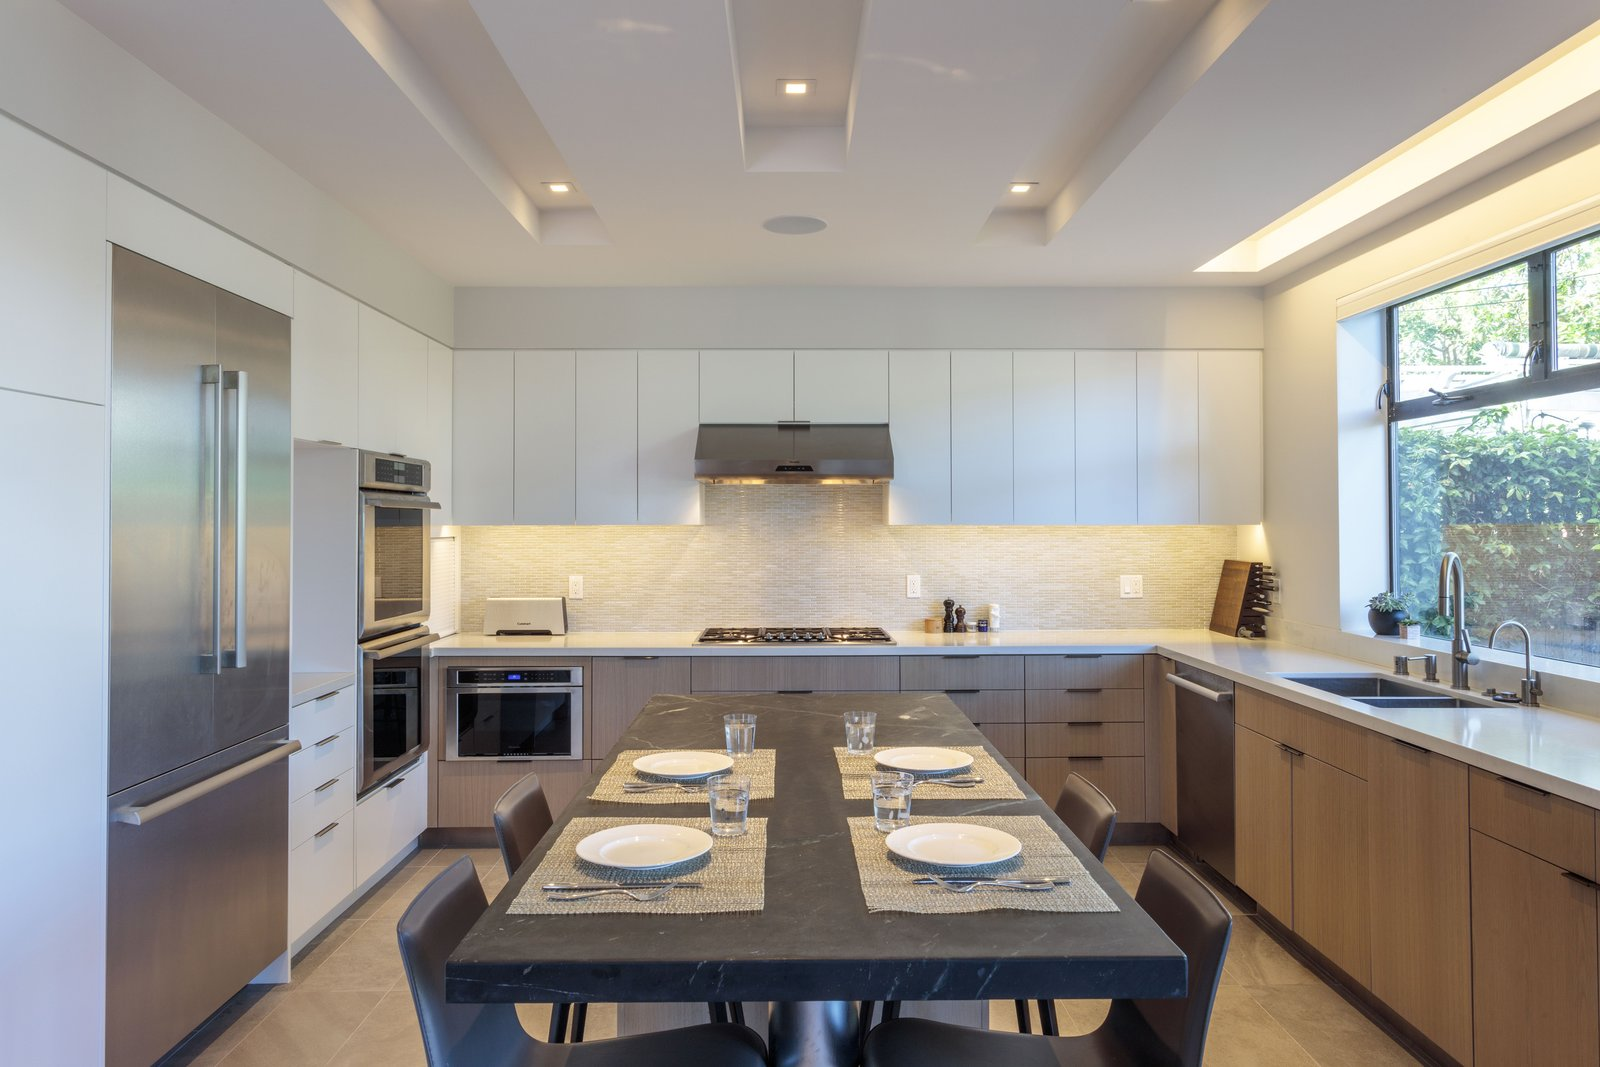 Kitchen, Stone Counter, Engineered Quartz Counter, White Cabinet, Wood Cabinet, Porcelain Tile Floor, Ceramic Tile Backsplashe, Recessed Lighting, Refrigerator, Wall Oven, Cooktops, Range Hood, Dishwasher, Microwave, and Undermount Sink kitchen  Legal House